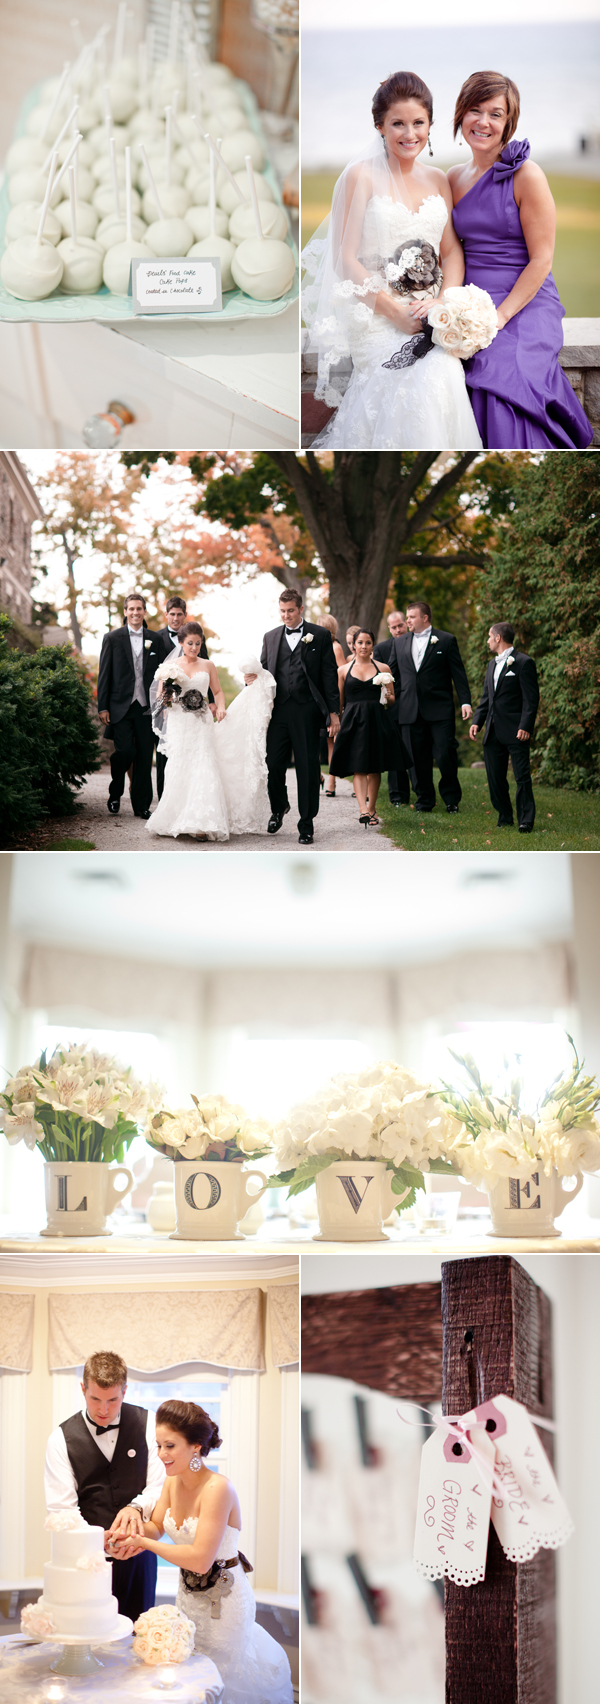 "tray of candy pops; bridal party walking down tree-covered lane; ""love"" steins holding flowers; cutting cake"